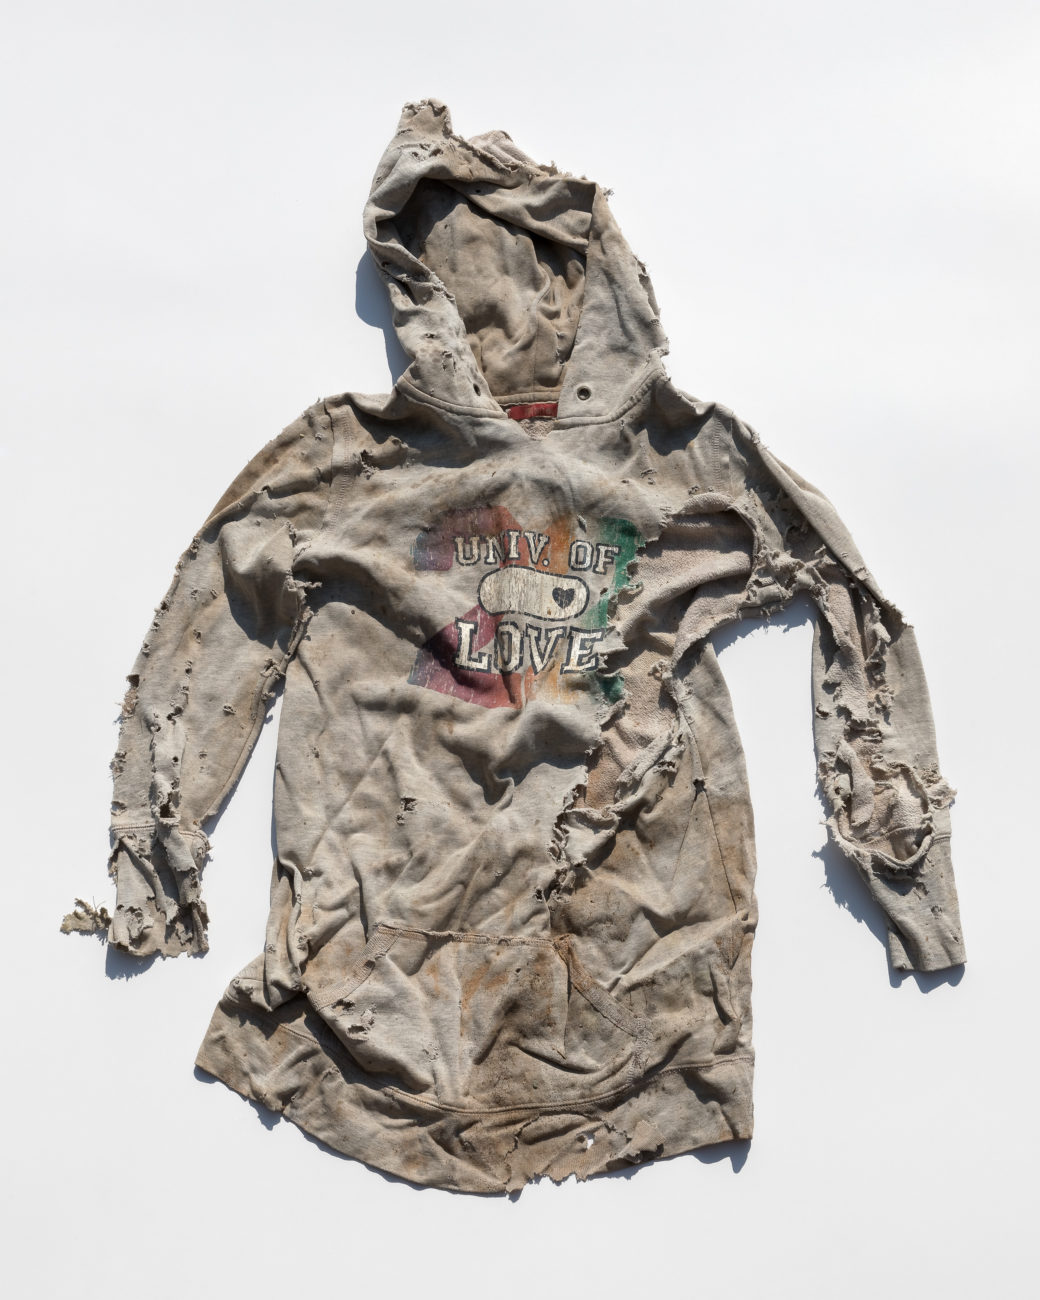 """A torn, ratty, gray sweatshirt with the logo """"Univ. of Love"""" on a white bakground"""